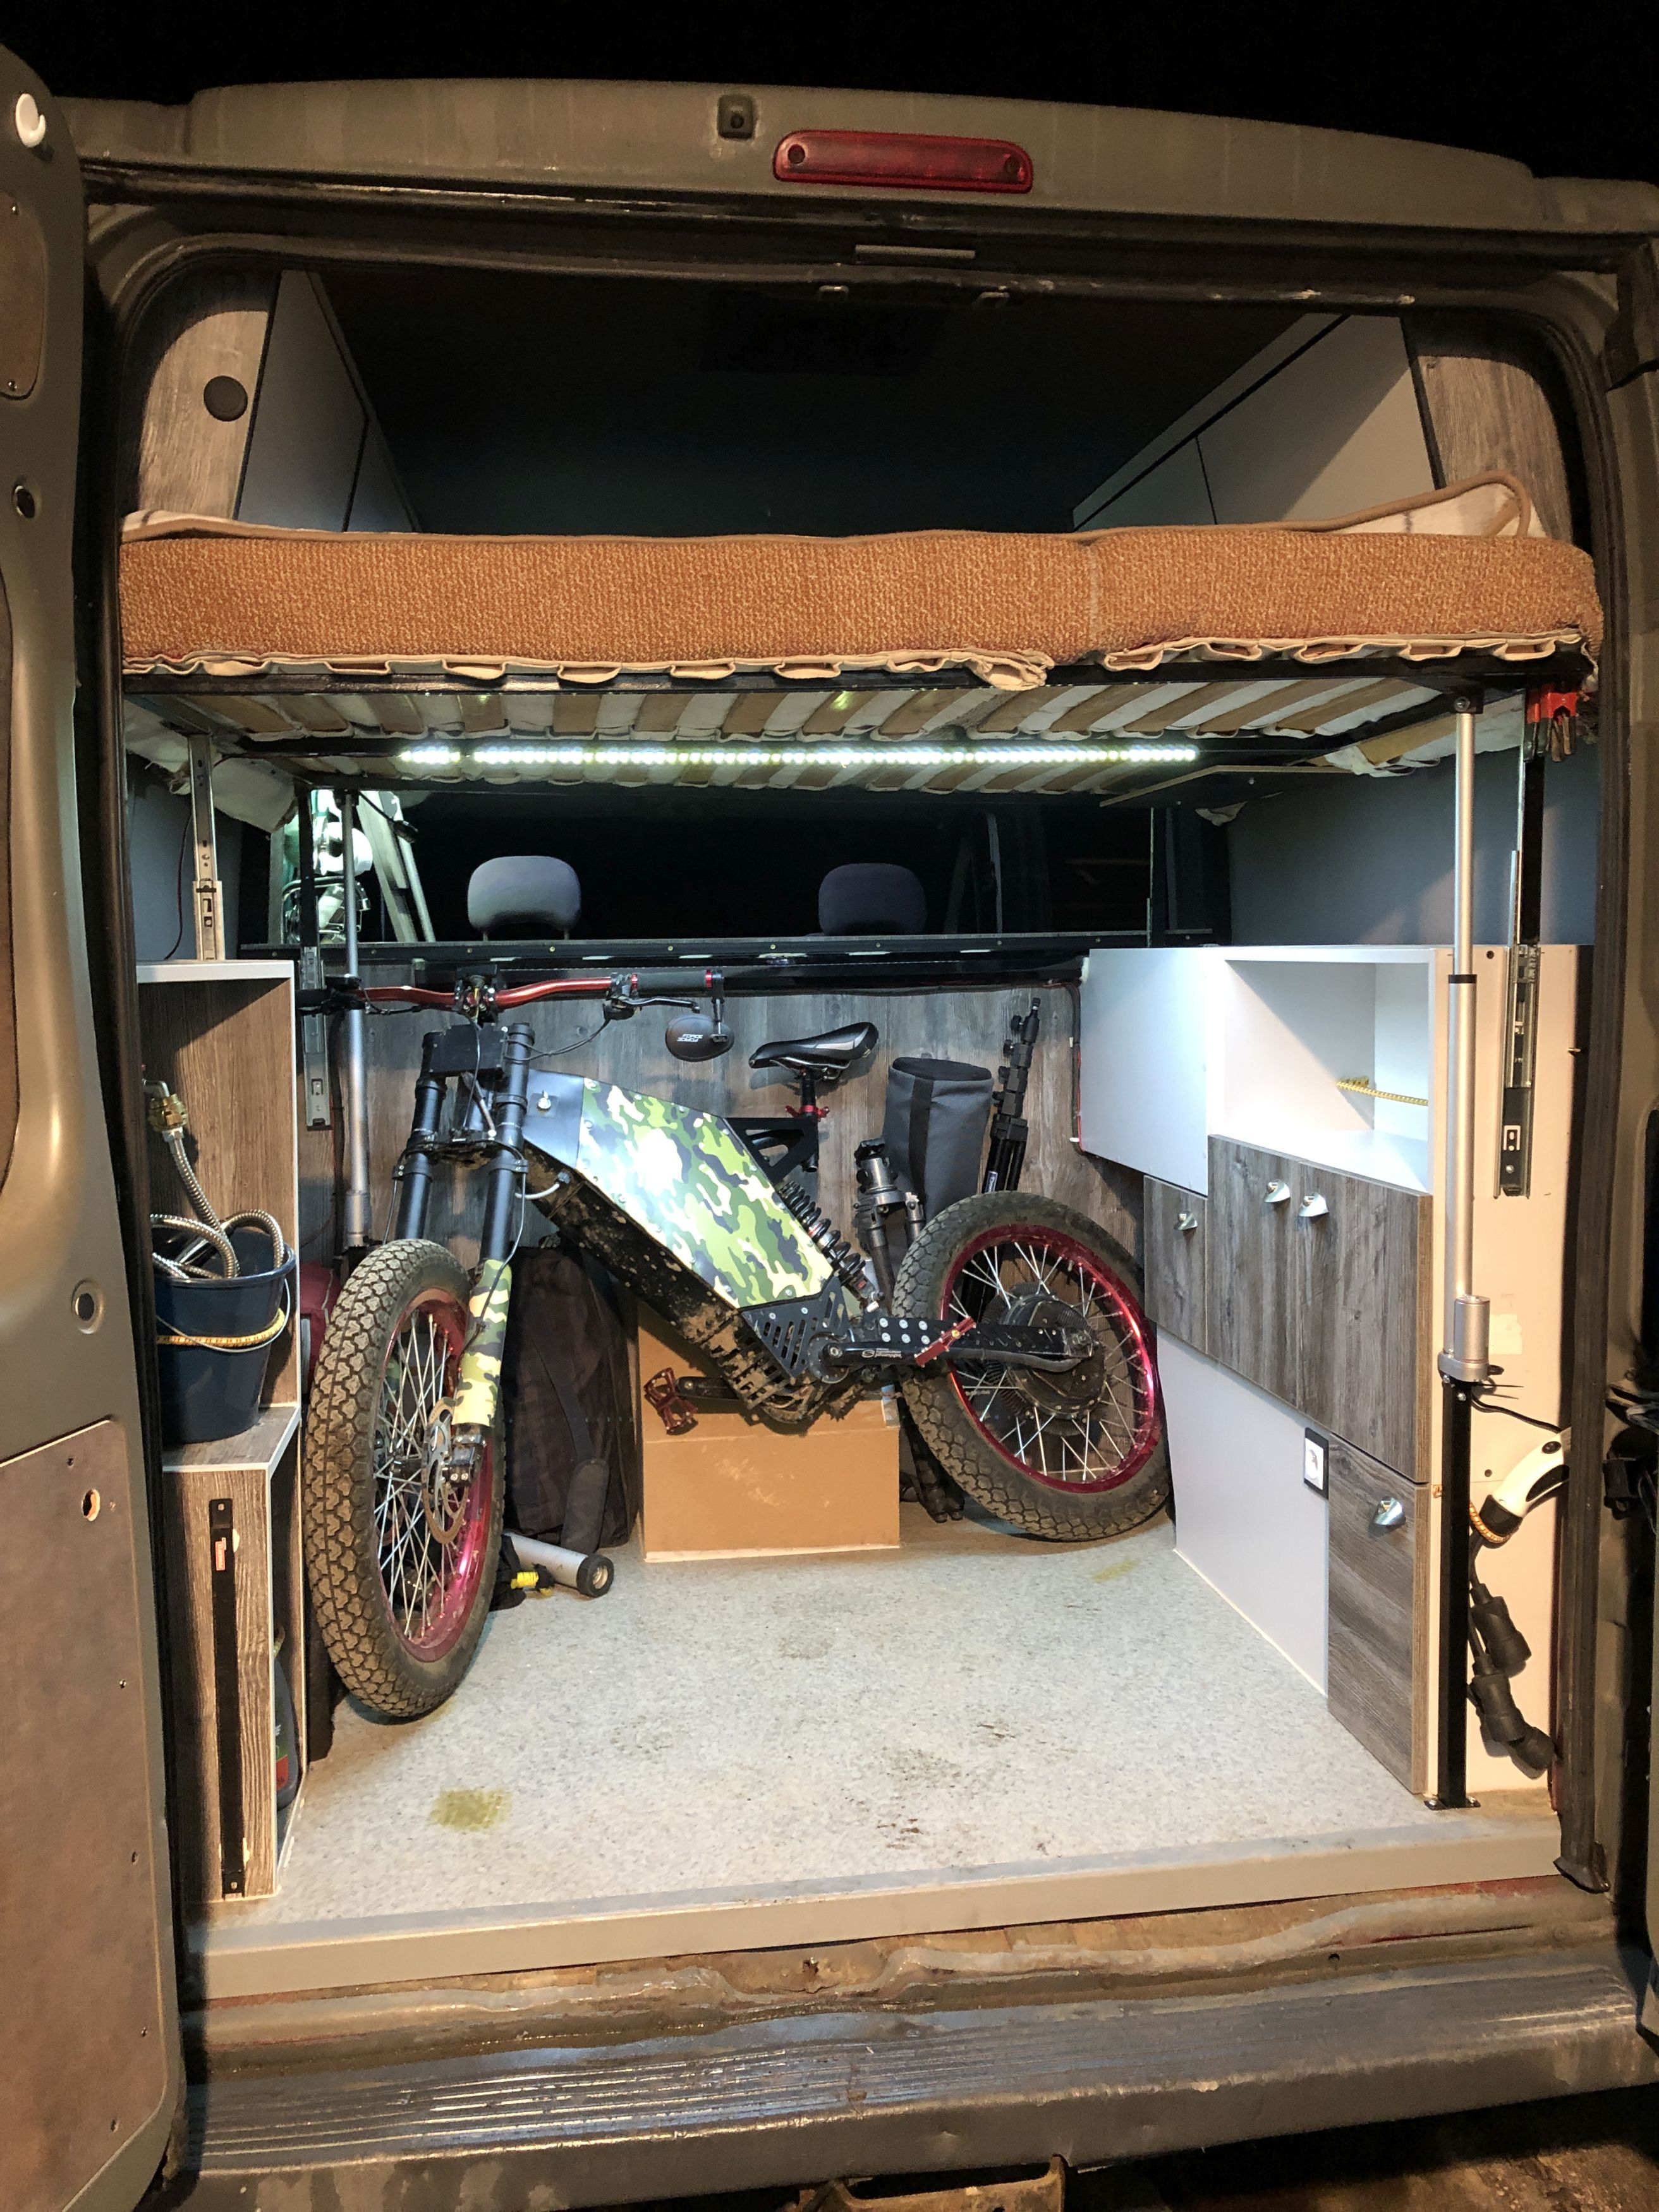 The van has a built in 'garage' to keep bikes. Credit: Kennedy News